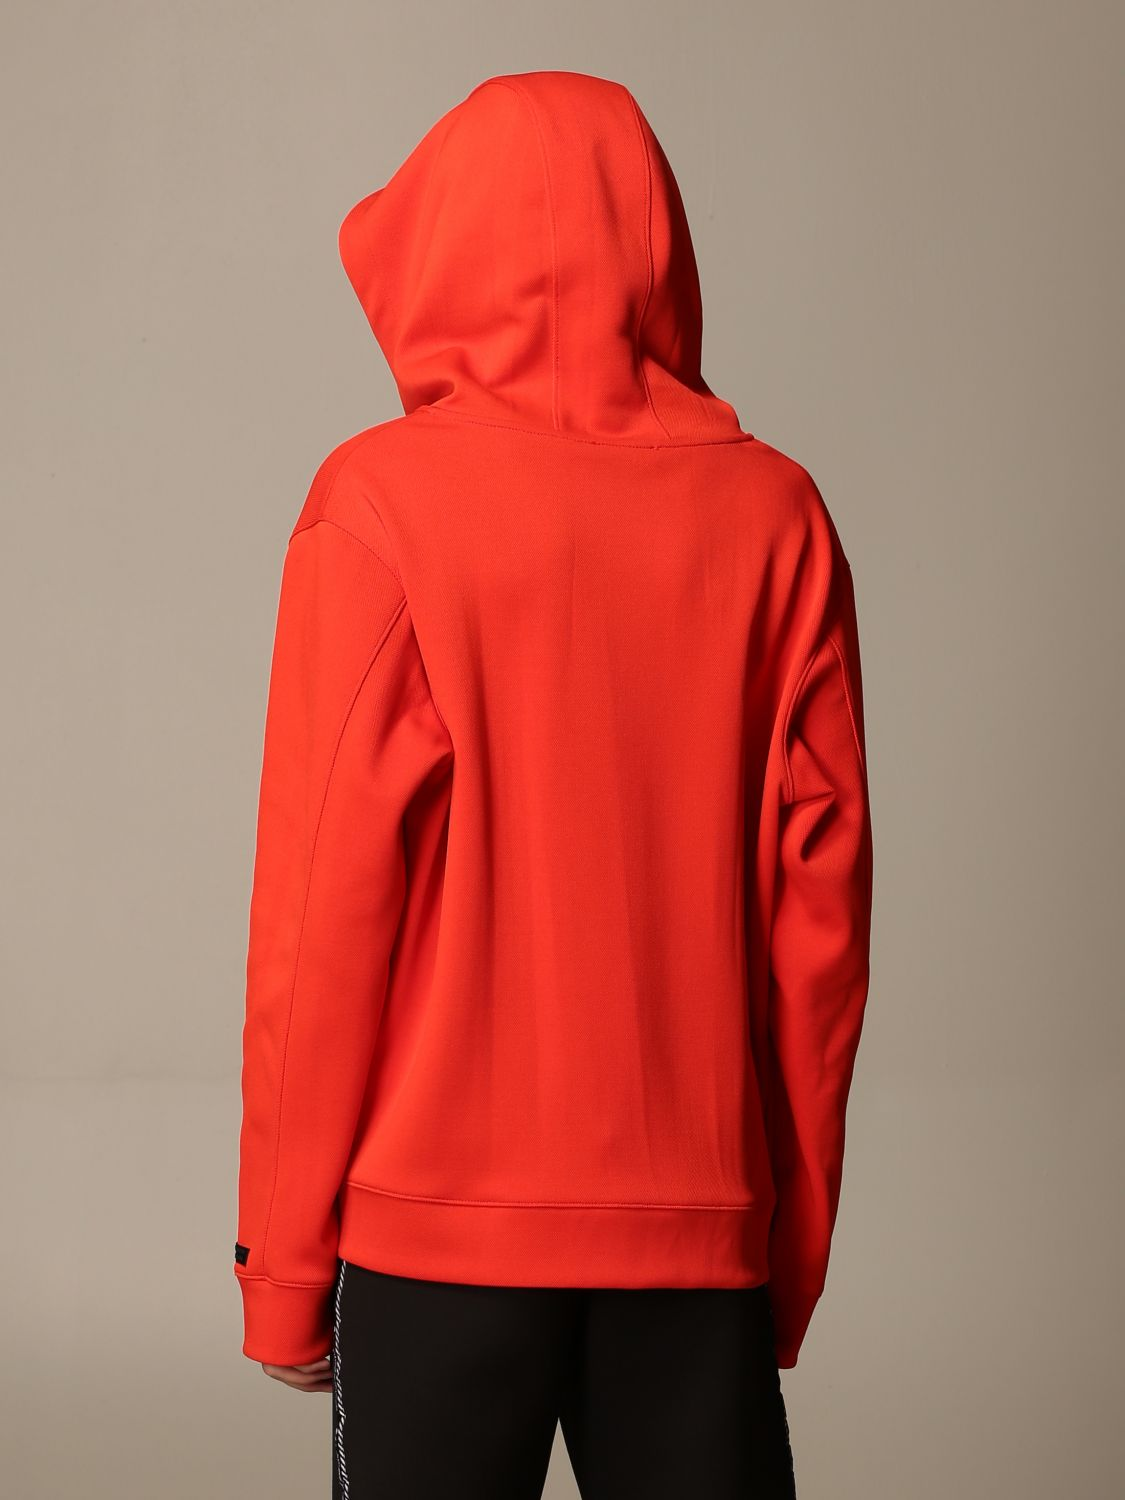 Sweatshirt Alessandro Dell'acqua: Jumper men Alessandro Dell'acqua orange 2